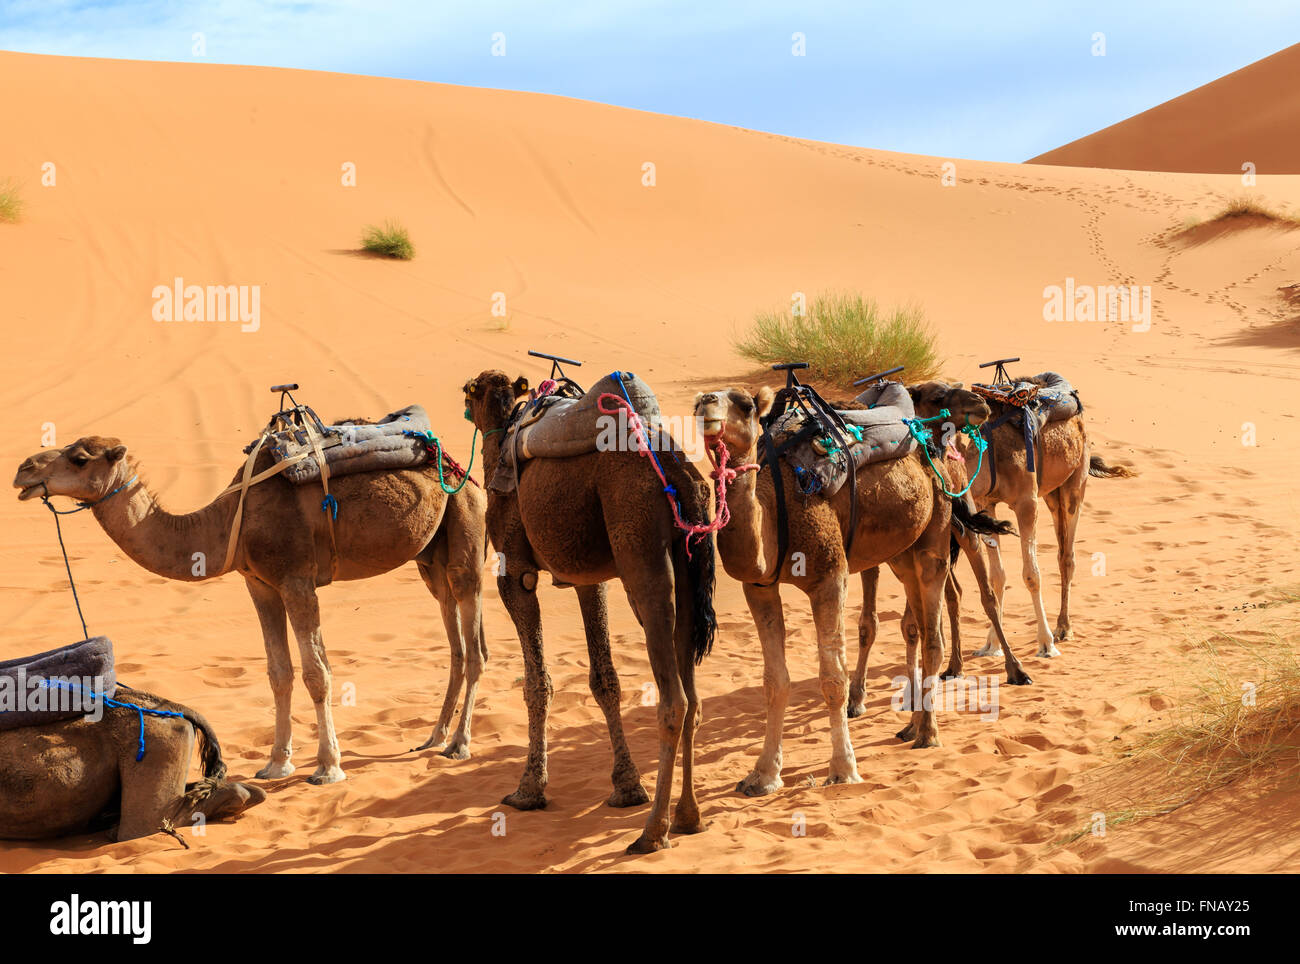 camels are in the dunes, Sahara desert - Stock Image